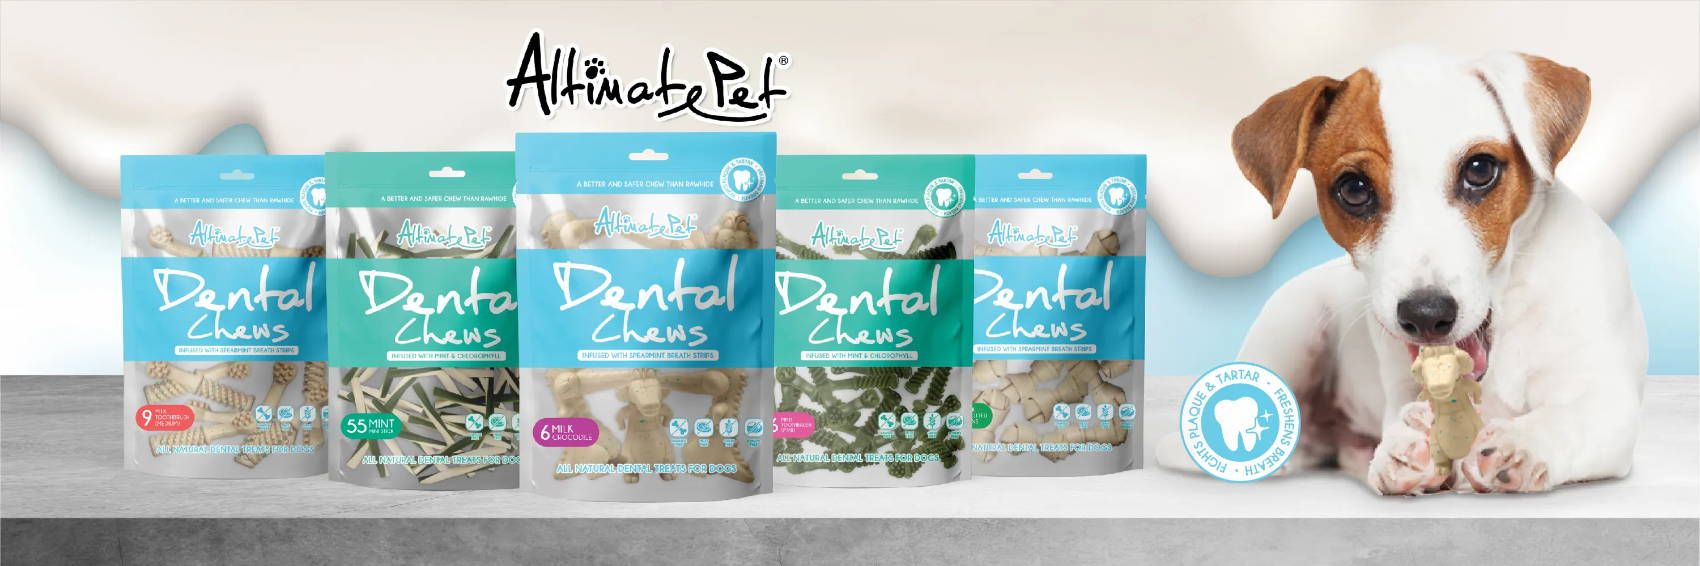 Altimate Pet dental chew banner